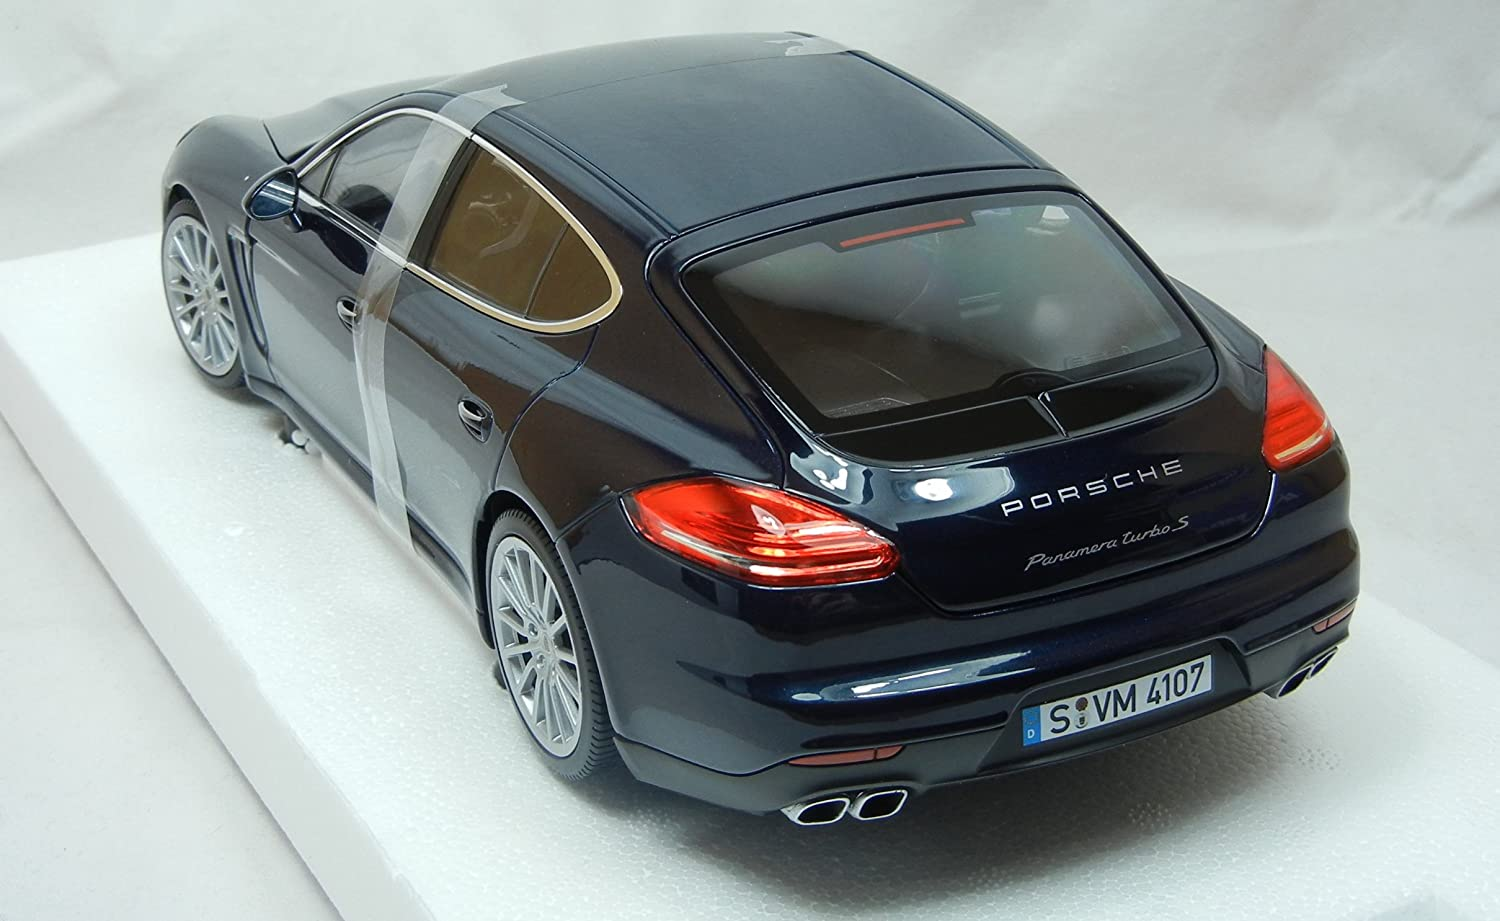 Amazon.com: Modellcar 1:18 Porsche Panamera Turbo S Bue Metallic Minichamps: Toys & Games